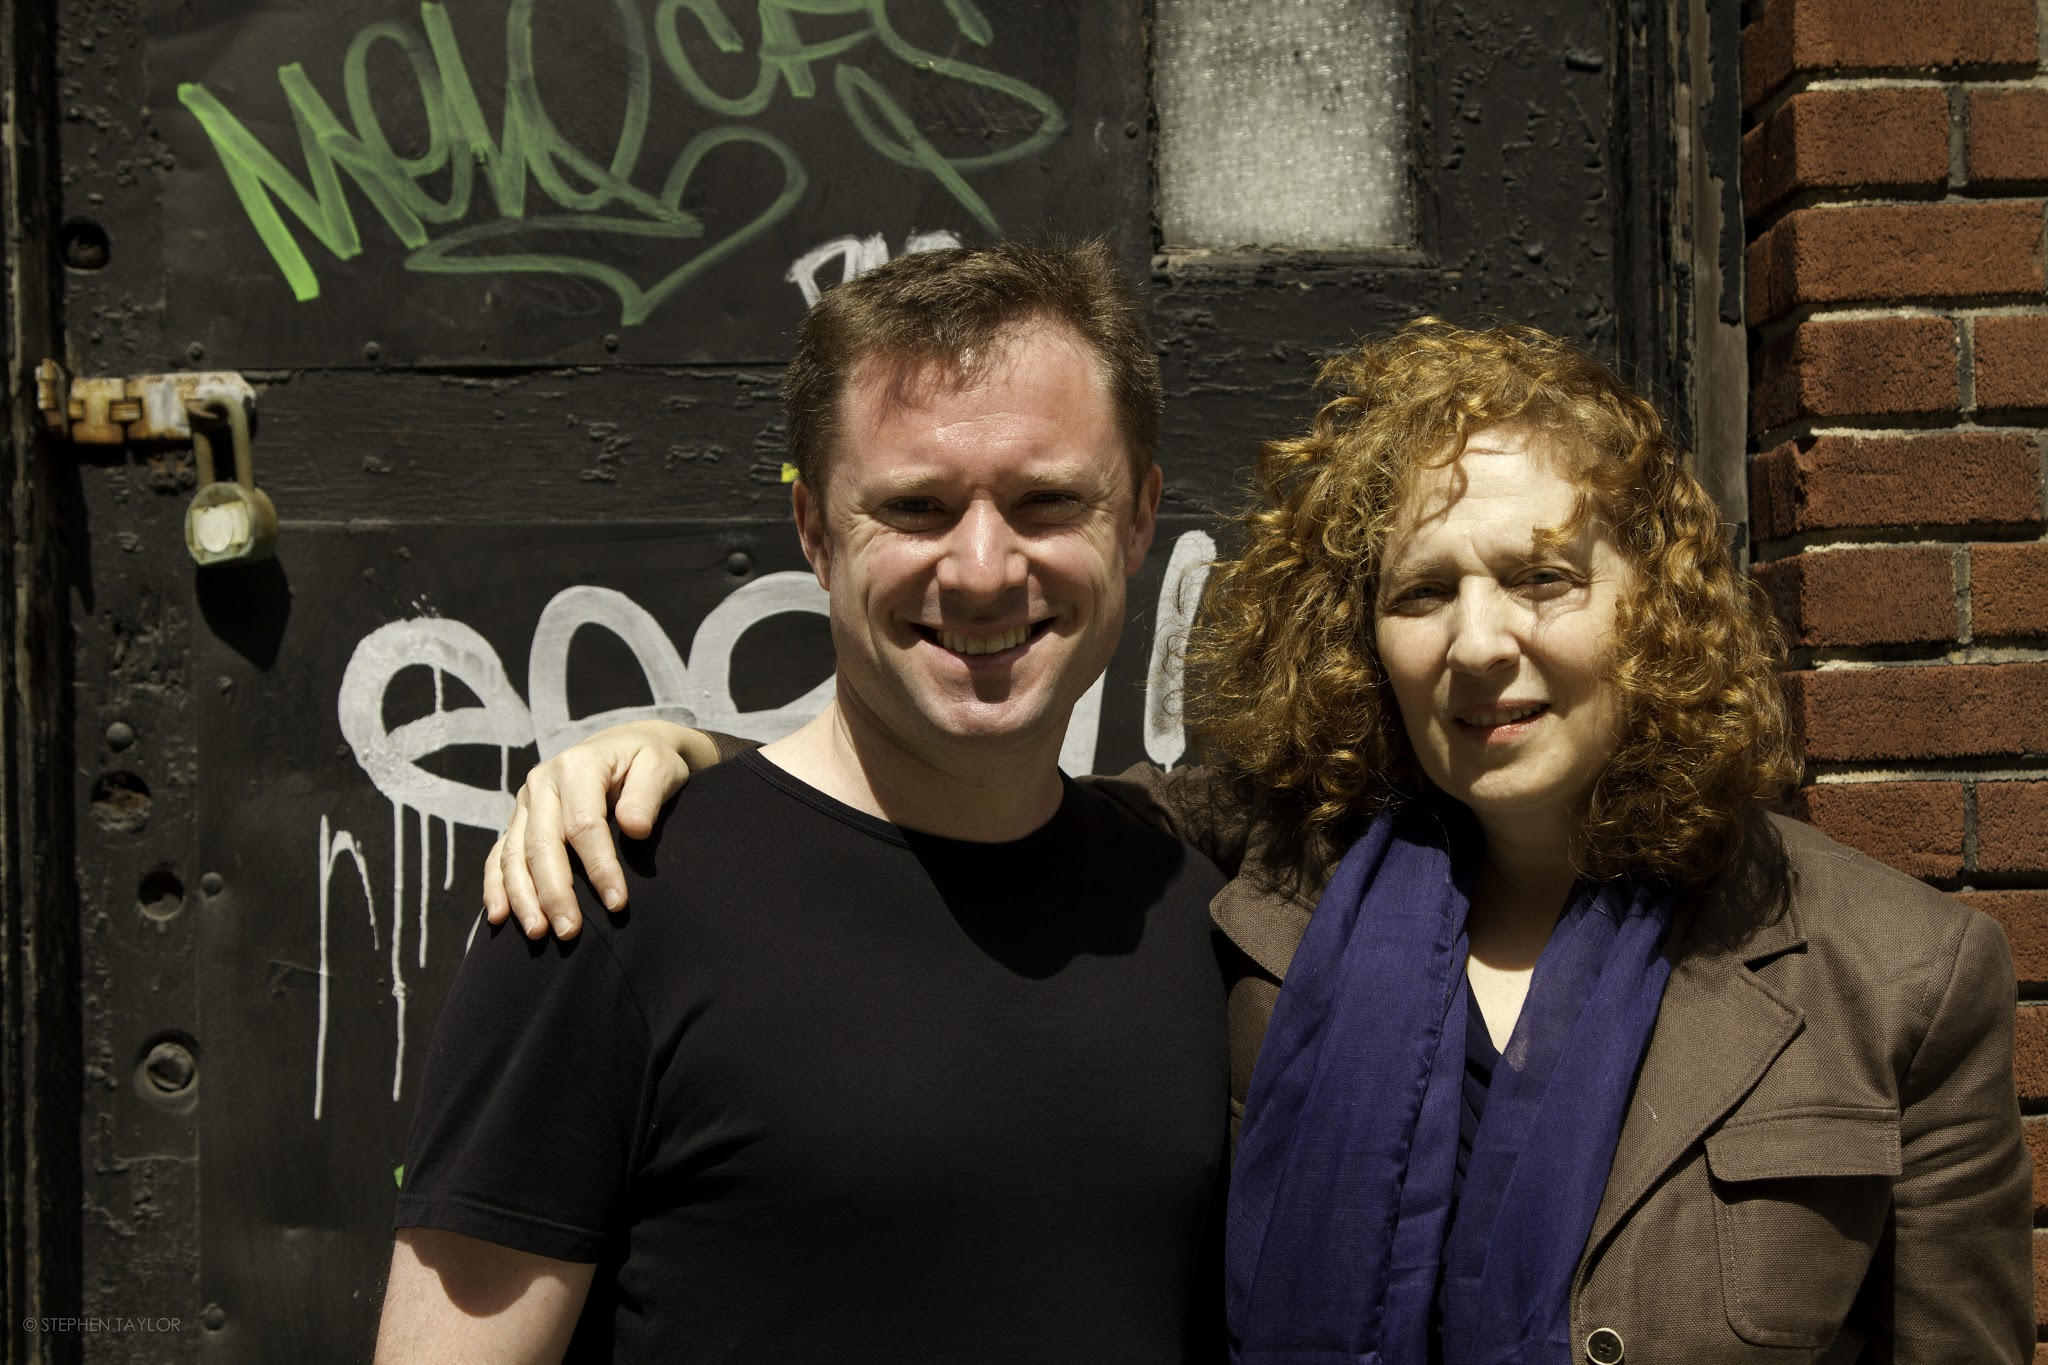 With Julia Wolfe in Tribeca, NYC in April 2013.